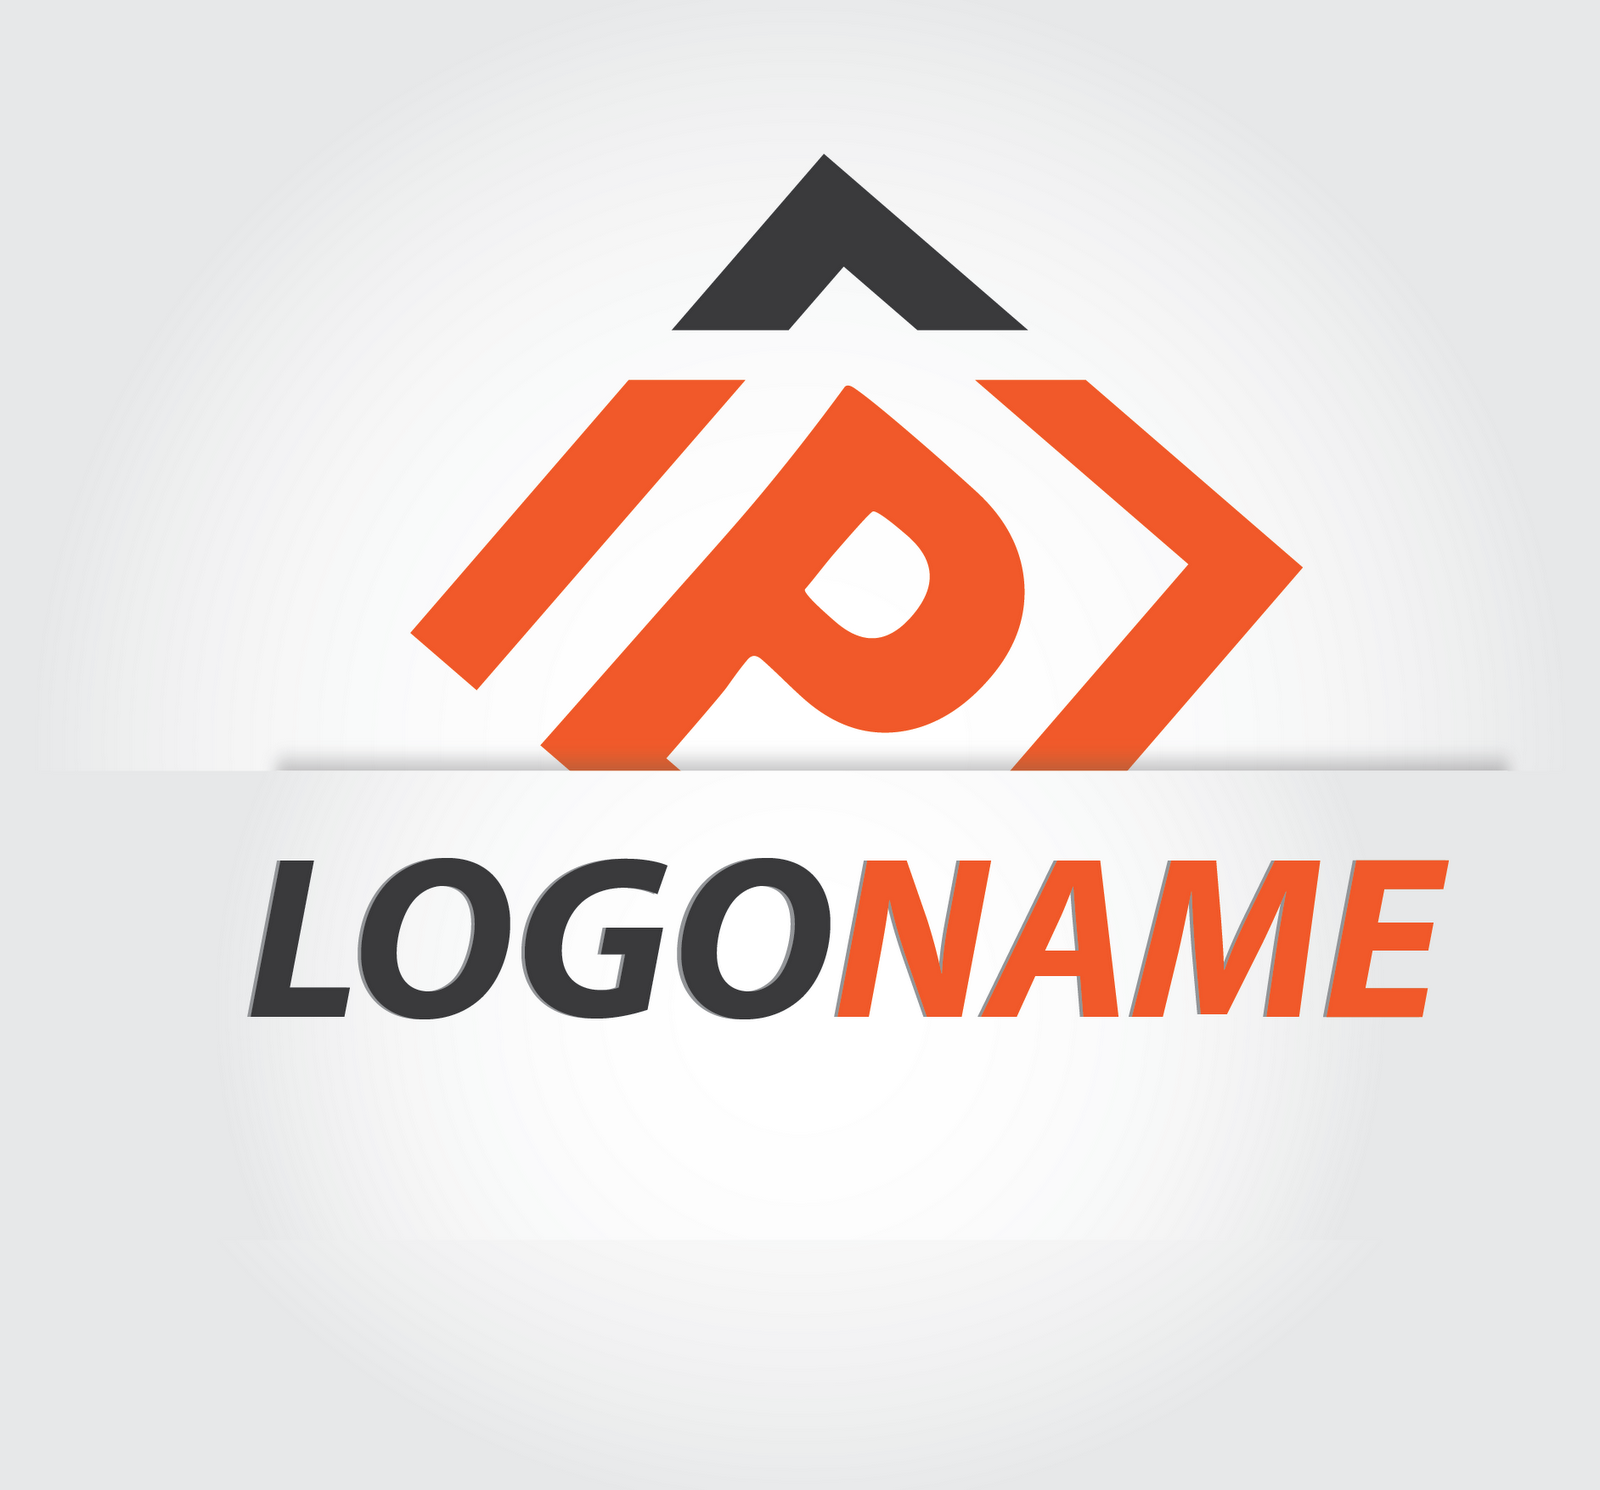 Company Logo Design Tutorial In Adobe Illustrator